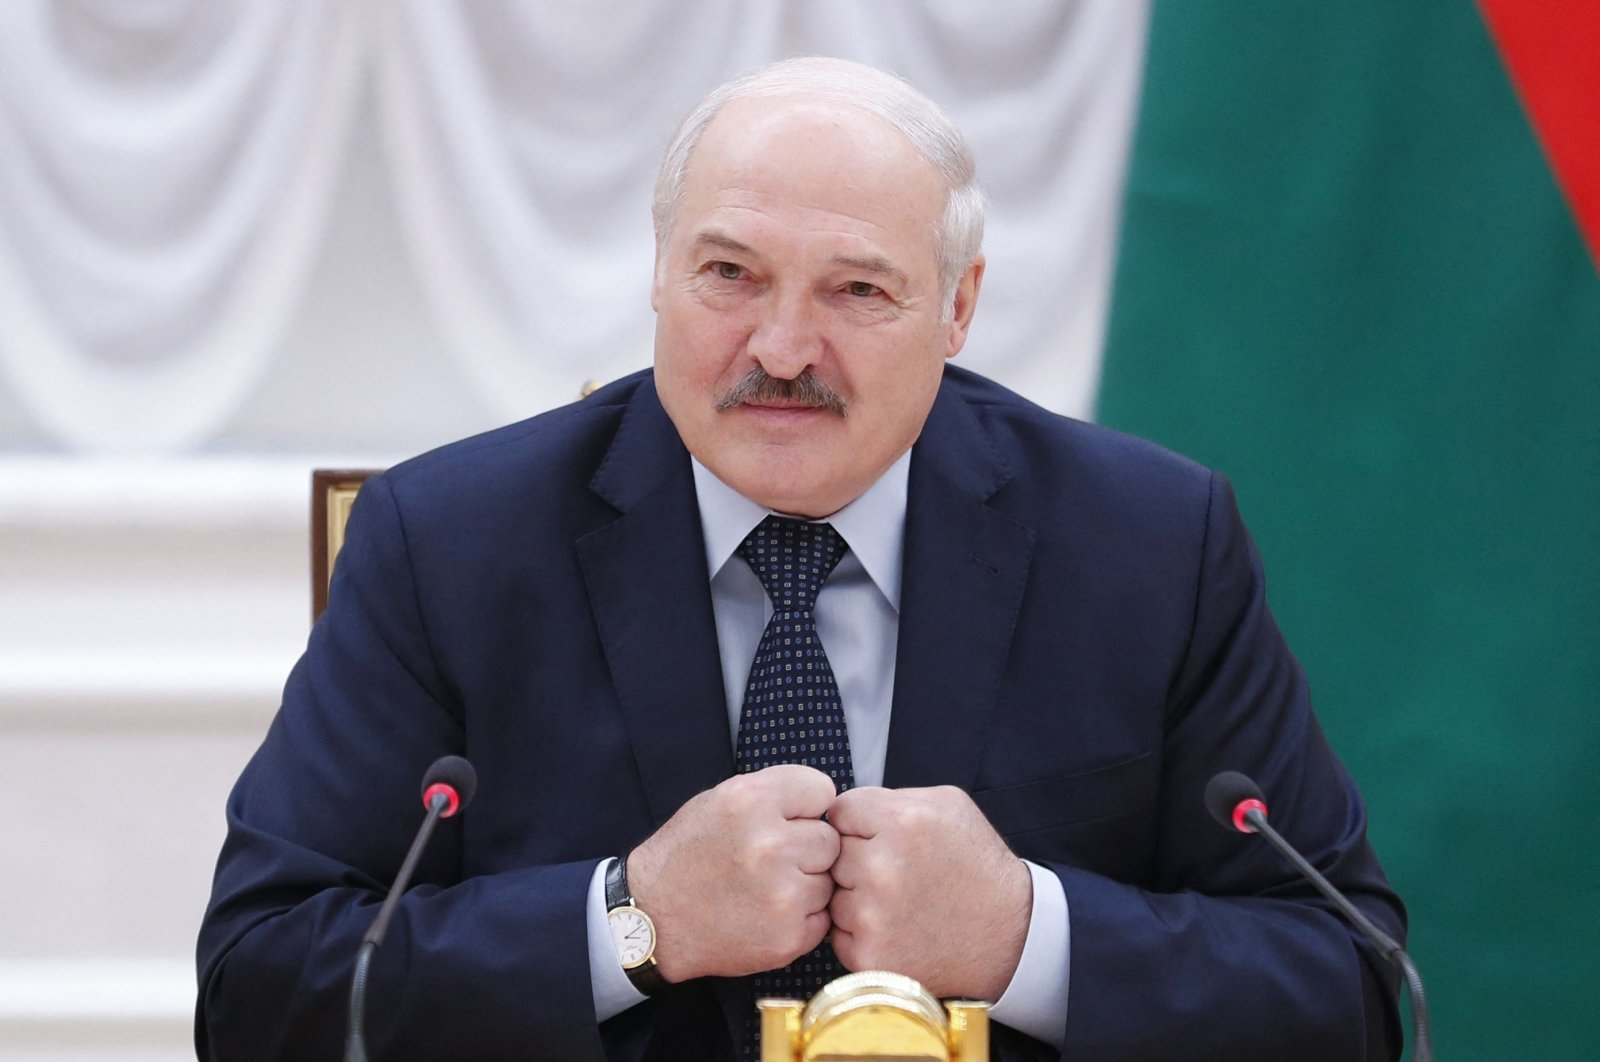 Belarusian President Alexander Lukashenko speaks during a meeting with Commonwealth of Independent States officials in Minsk, Belarus, May 28, 2021. (AFP Photo)